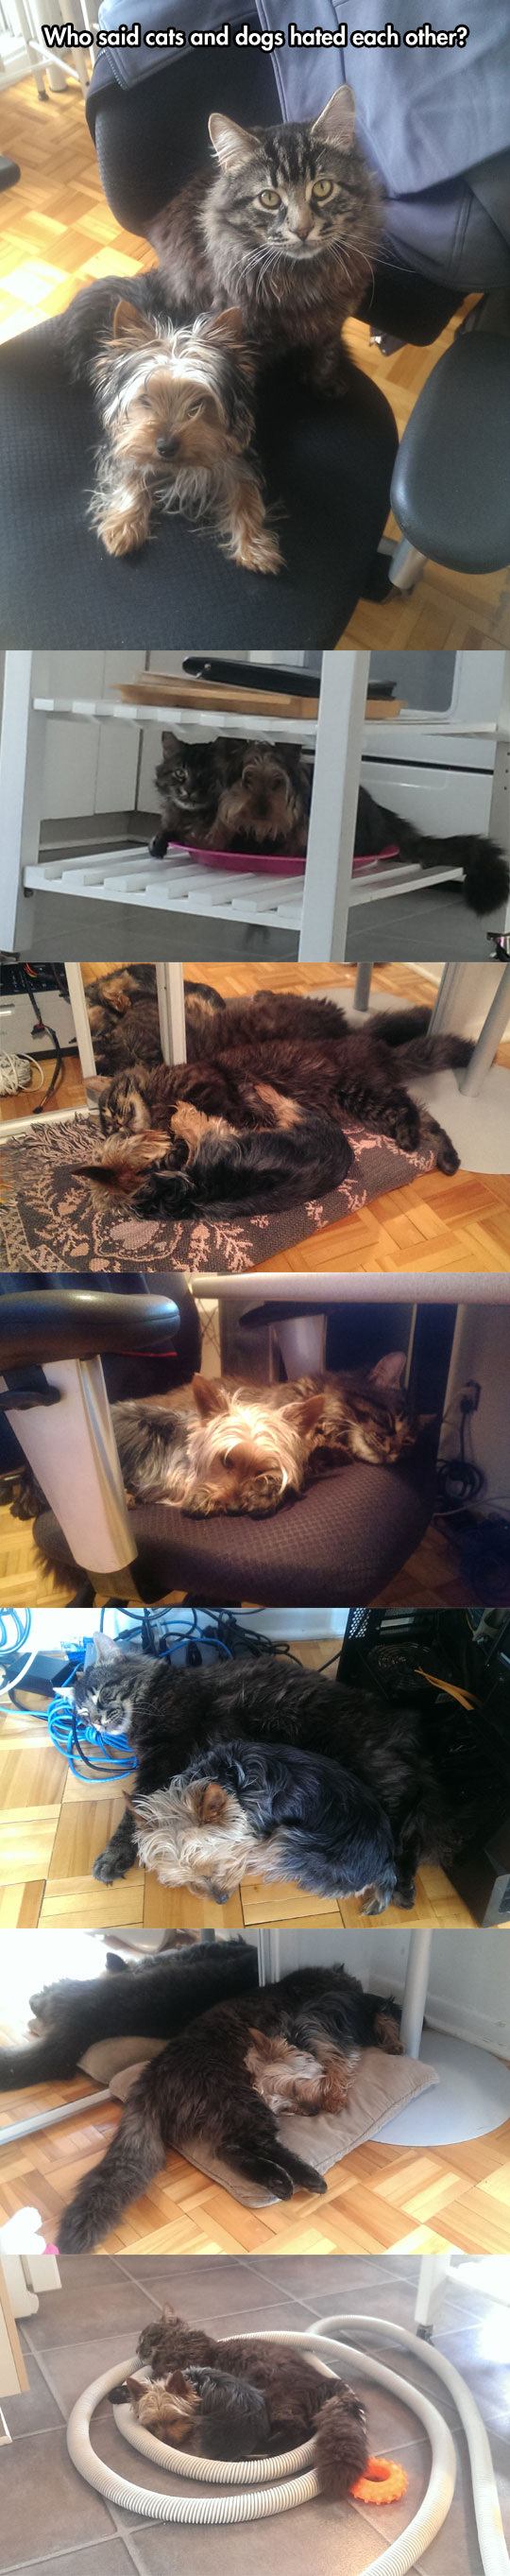 cute-cat-dog-friends-brothers-pets